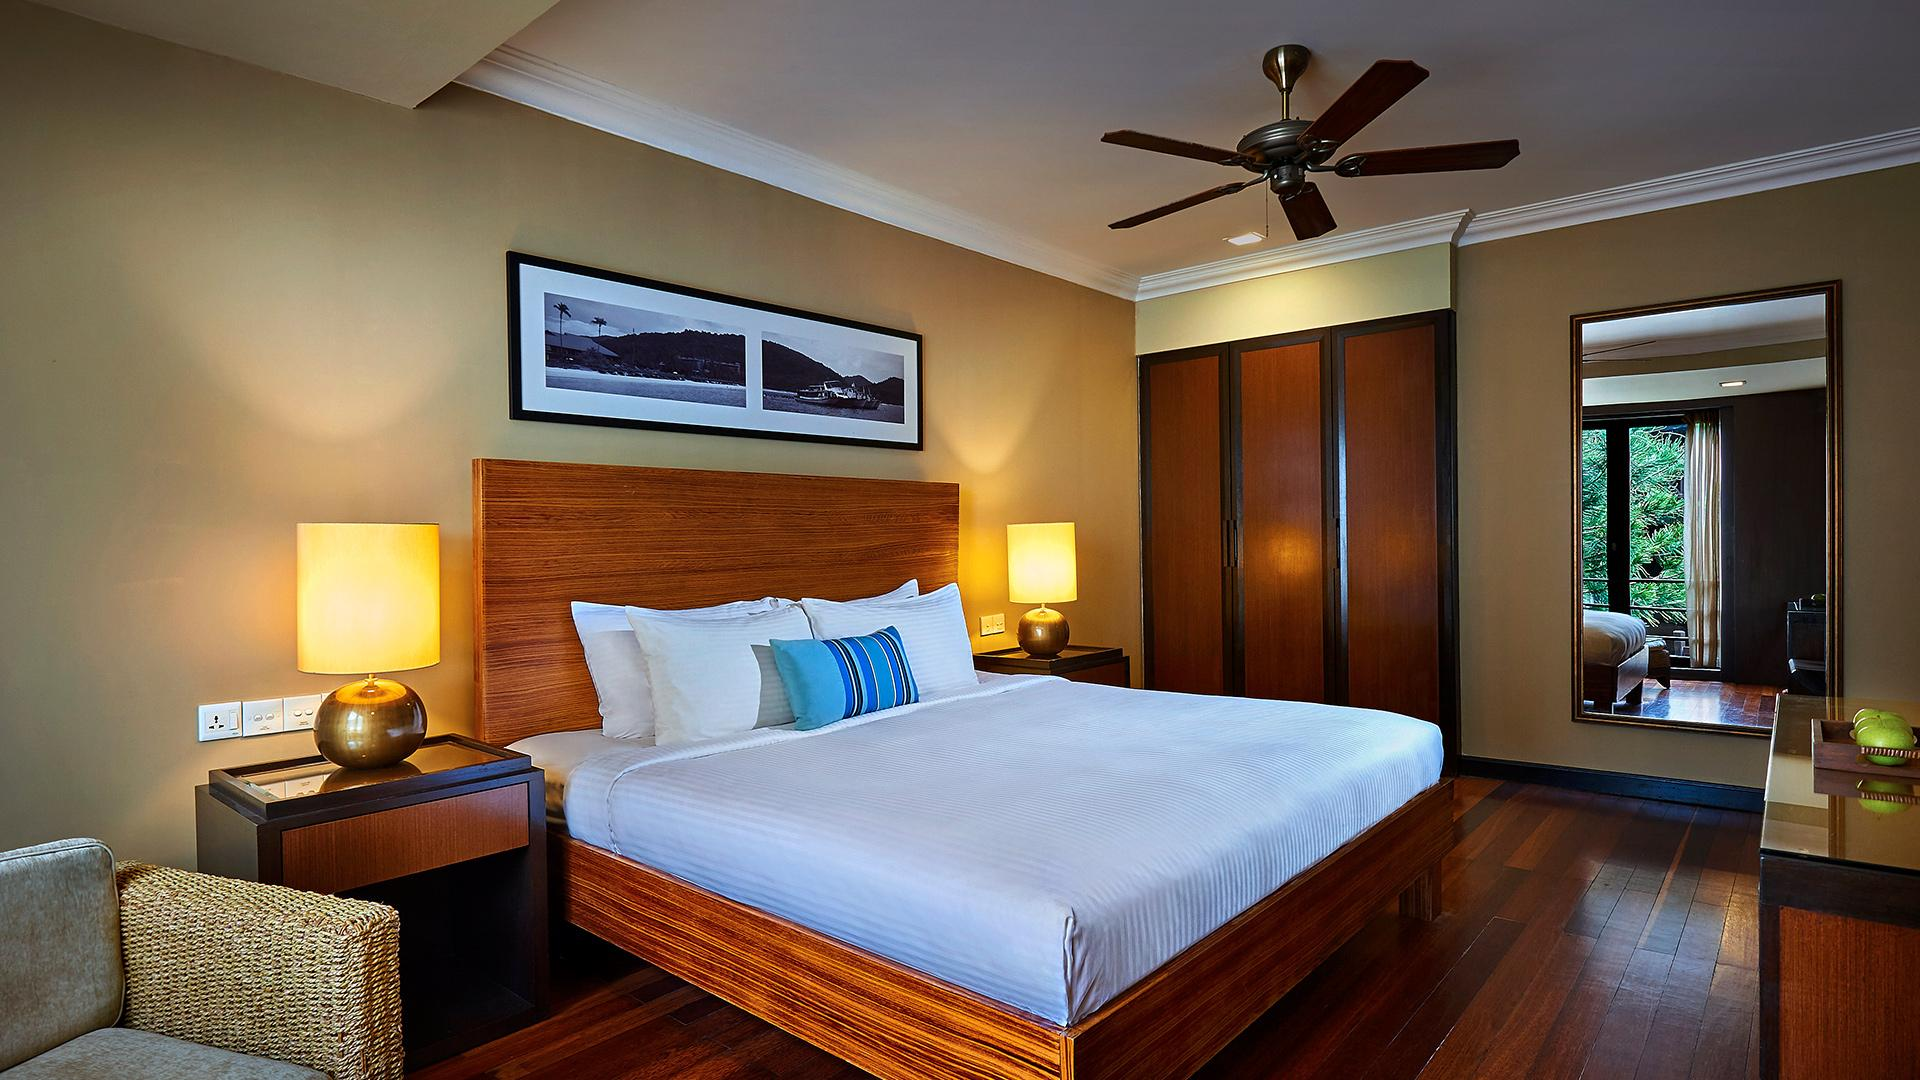 Garden Suite image 1 at The Taaras Beach & Spa Resort by null, Terengganu, Malaysia